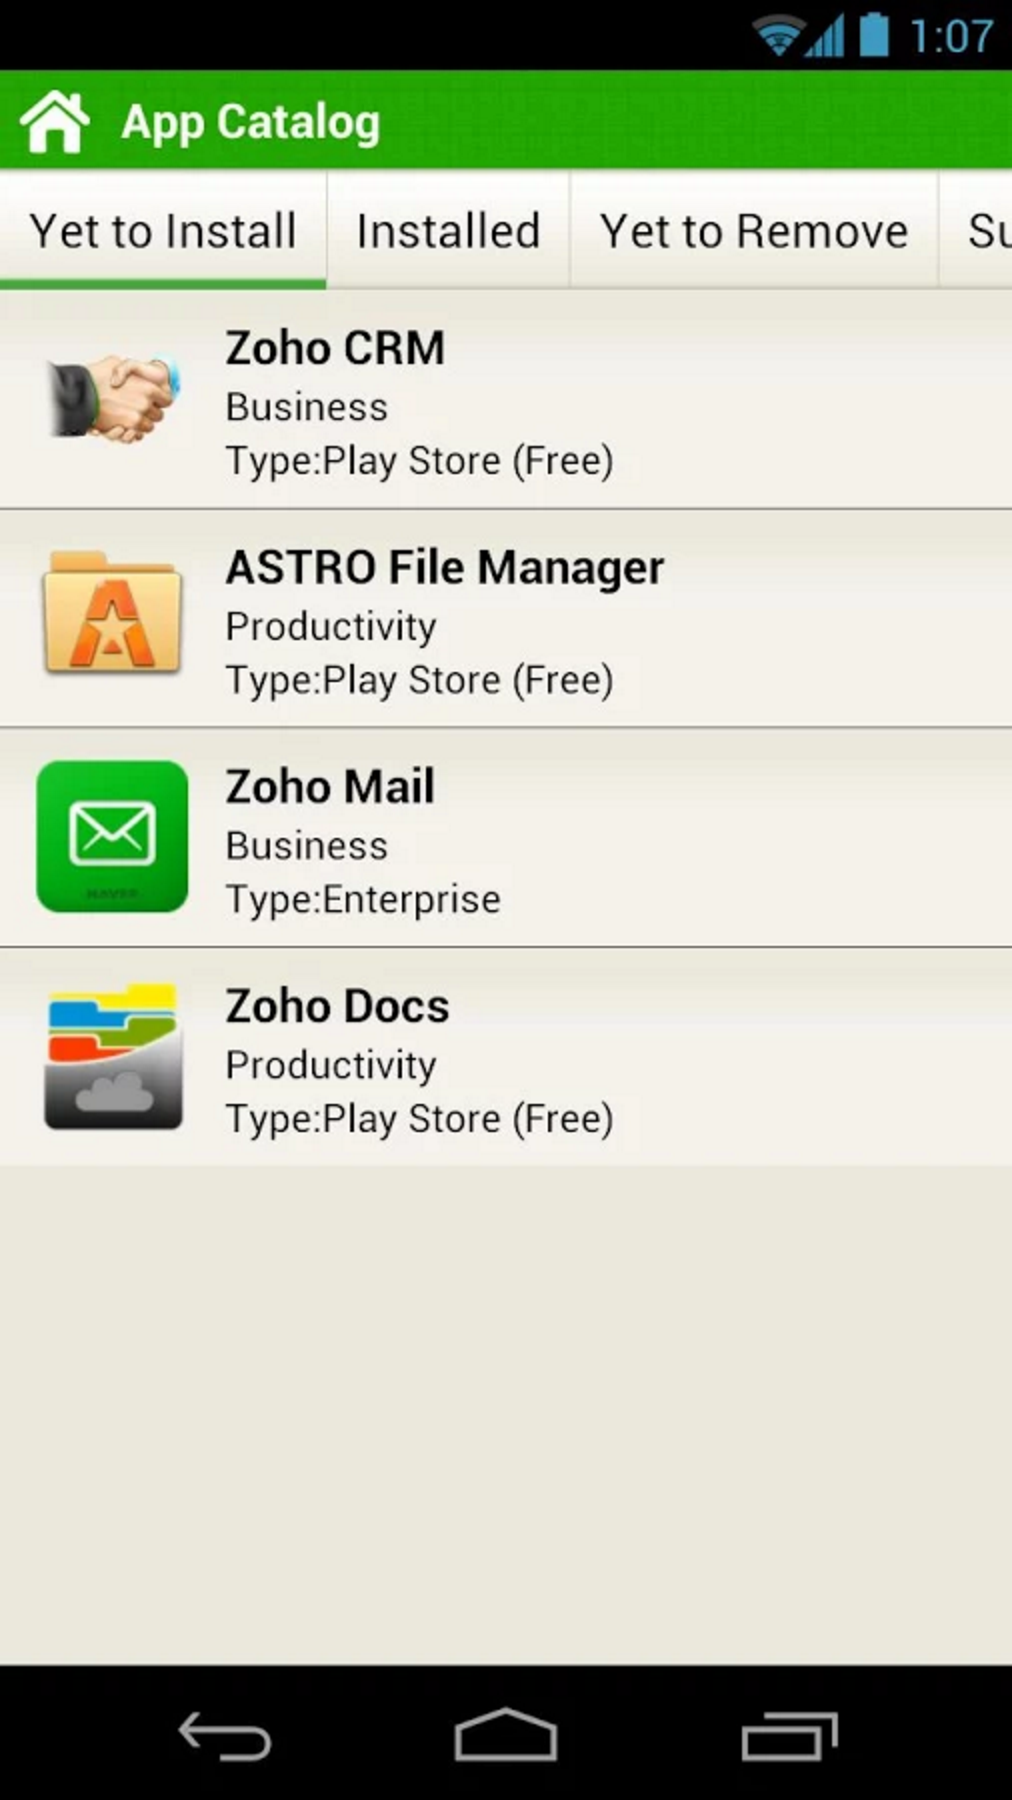 The App Catalog will have the apps that are pushed by the IT admin for the user to download. The user can have them installed on their devices by simply clicking 'install'.